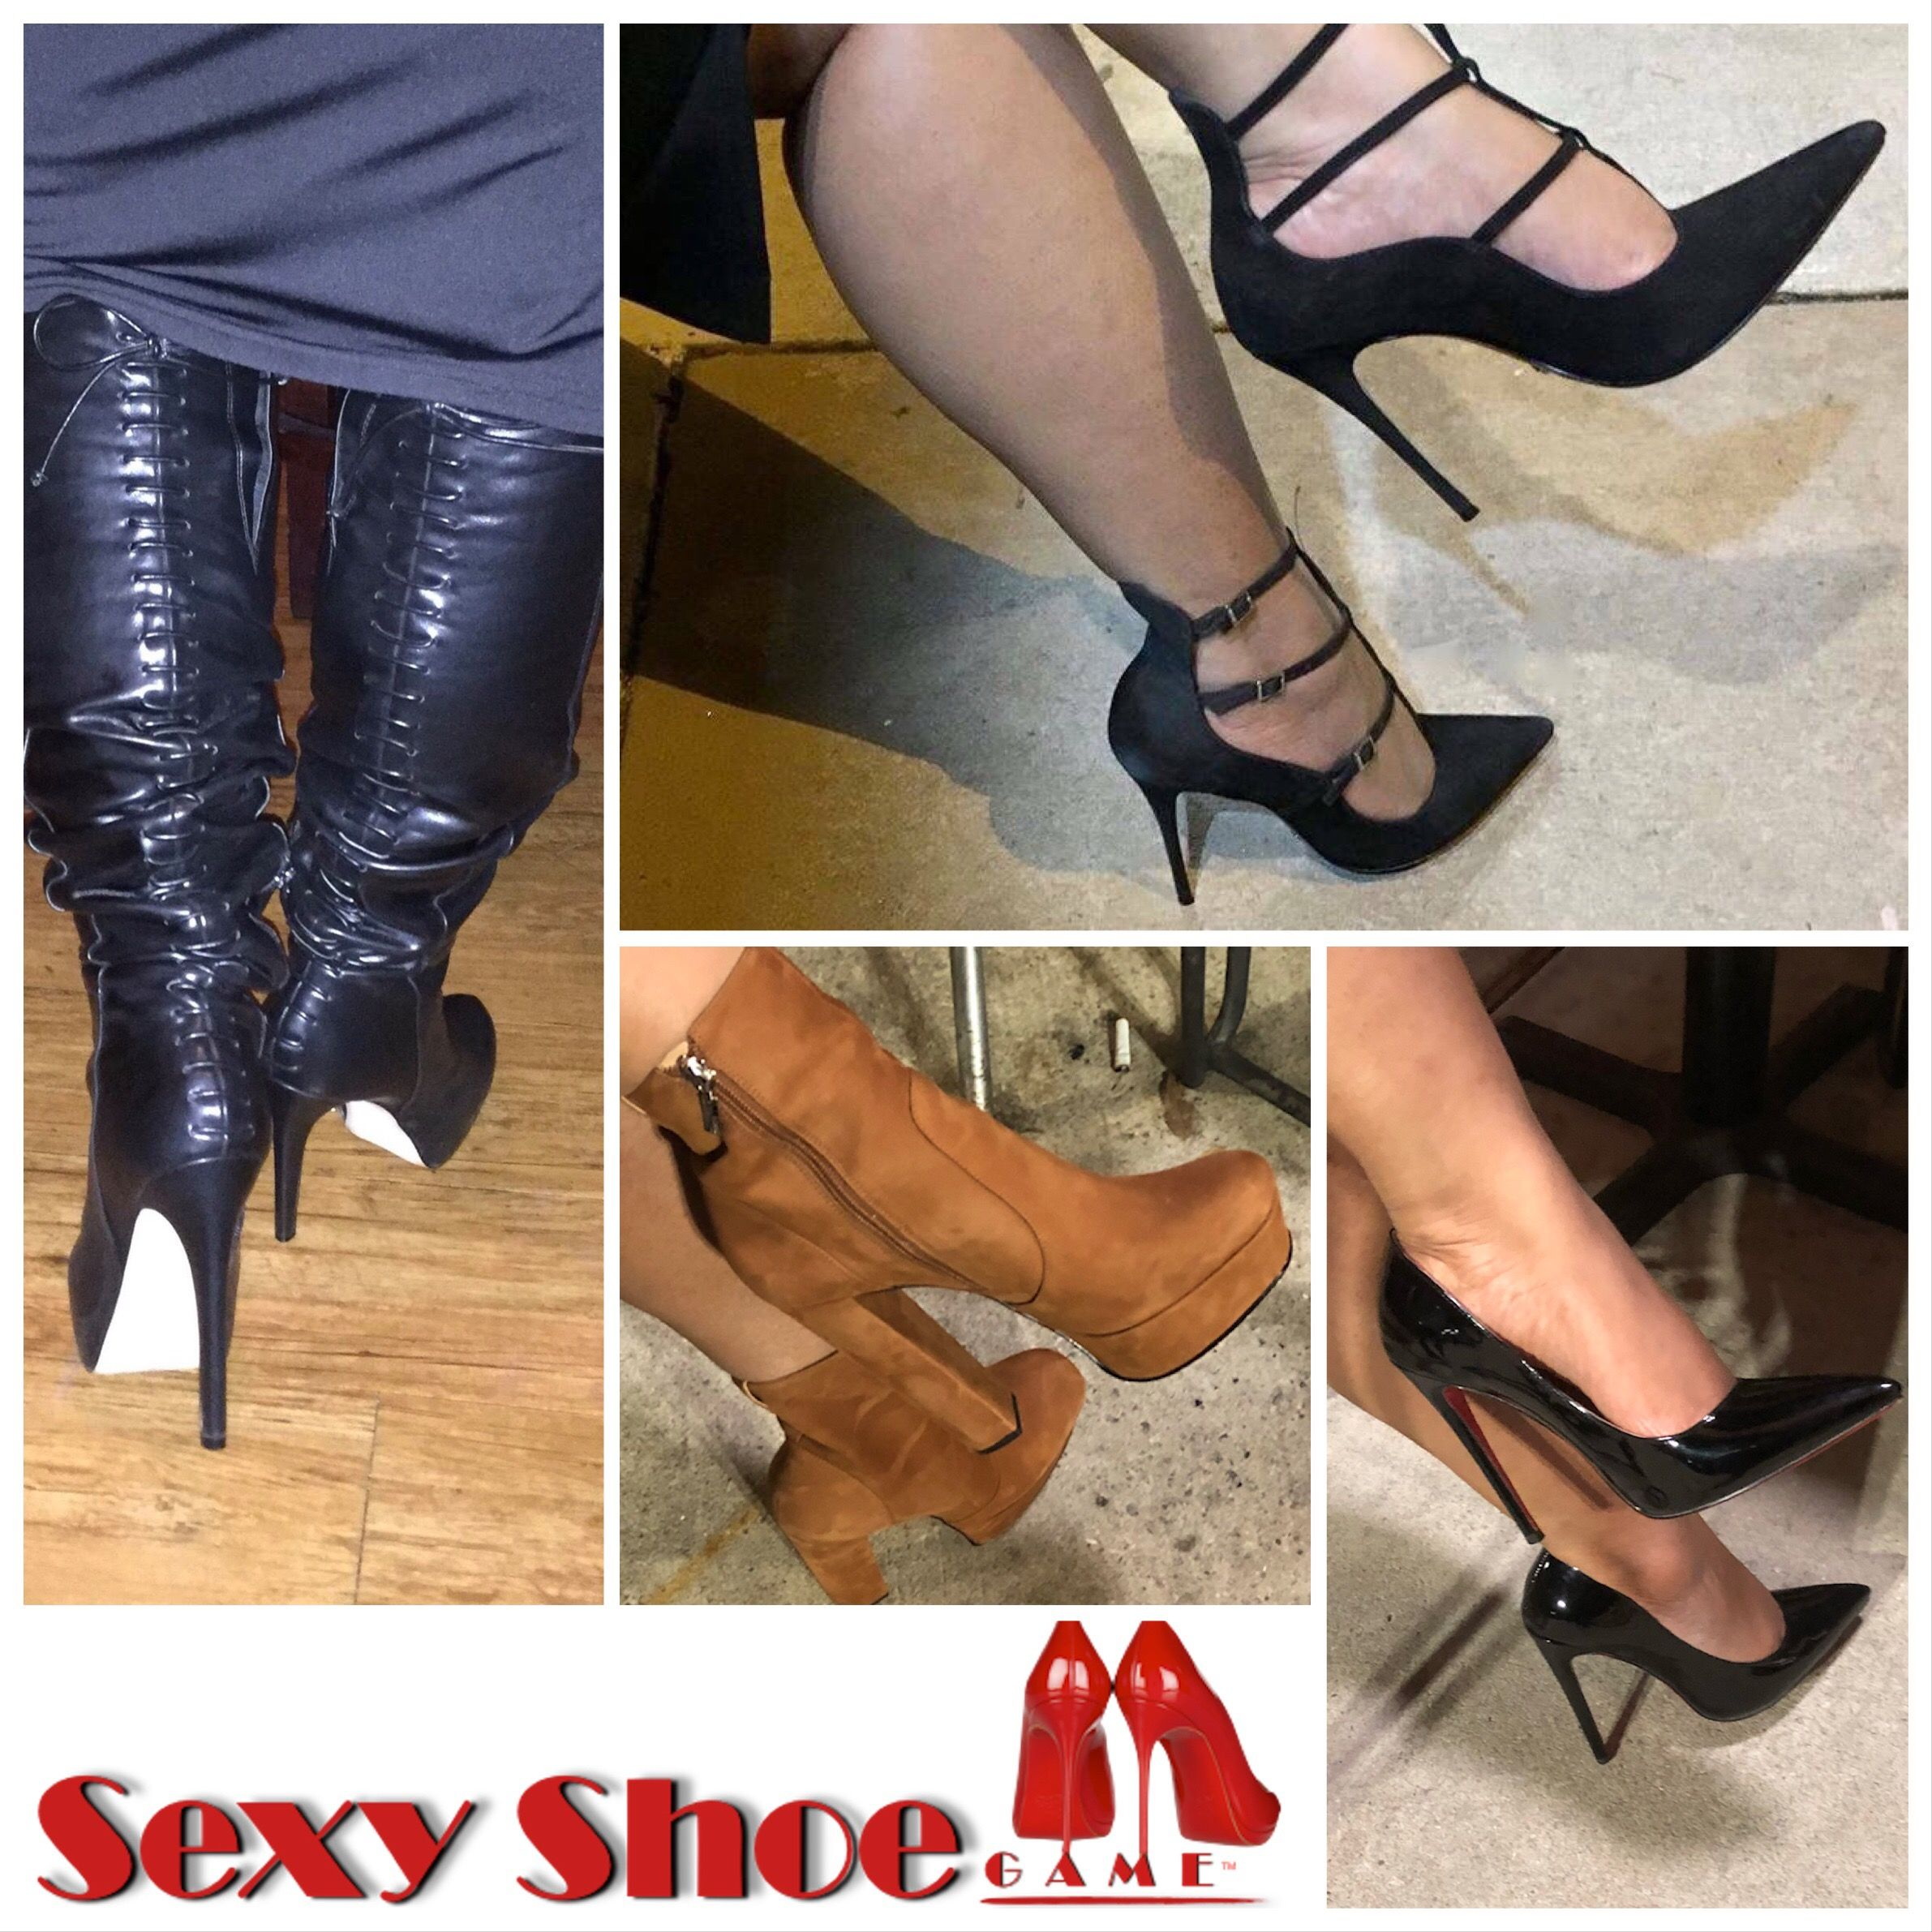 Pin on Sexy Shoe Game